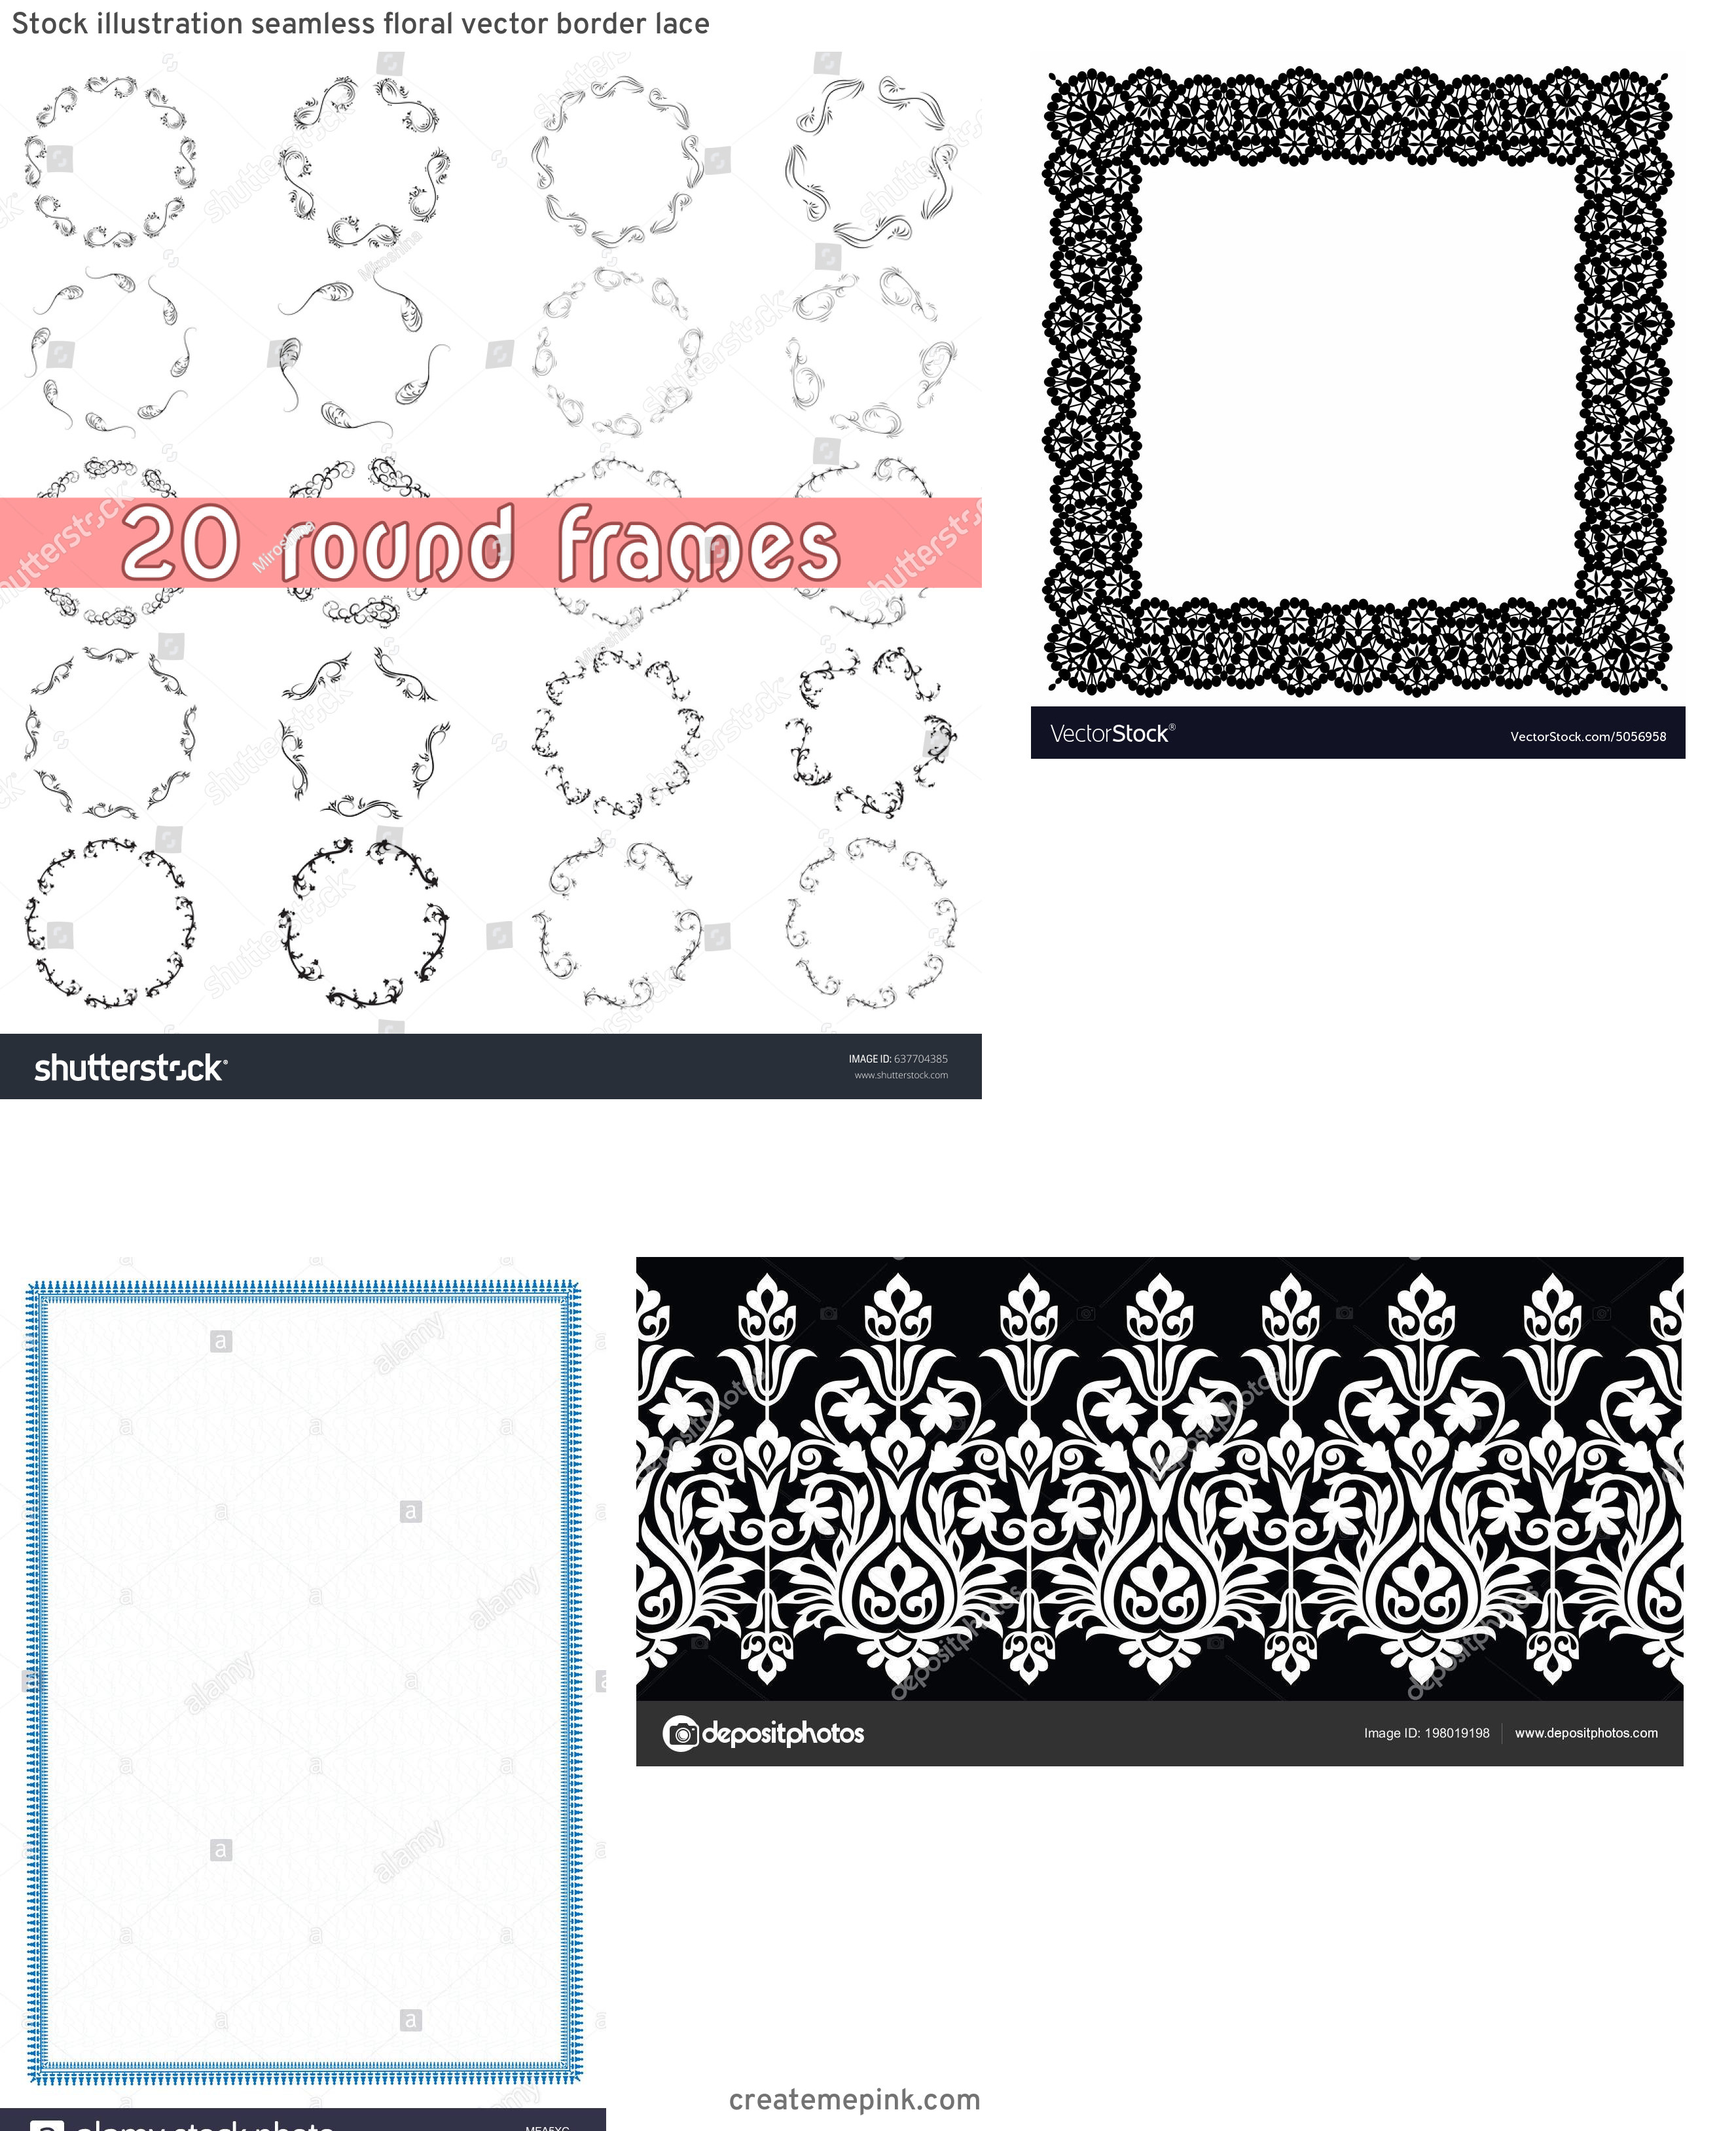 Simple Lace Frame Vector: Stock Illustration Seamless Floral Vector Border Lace